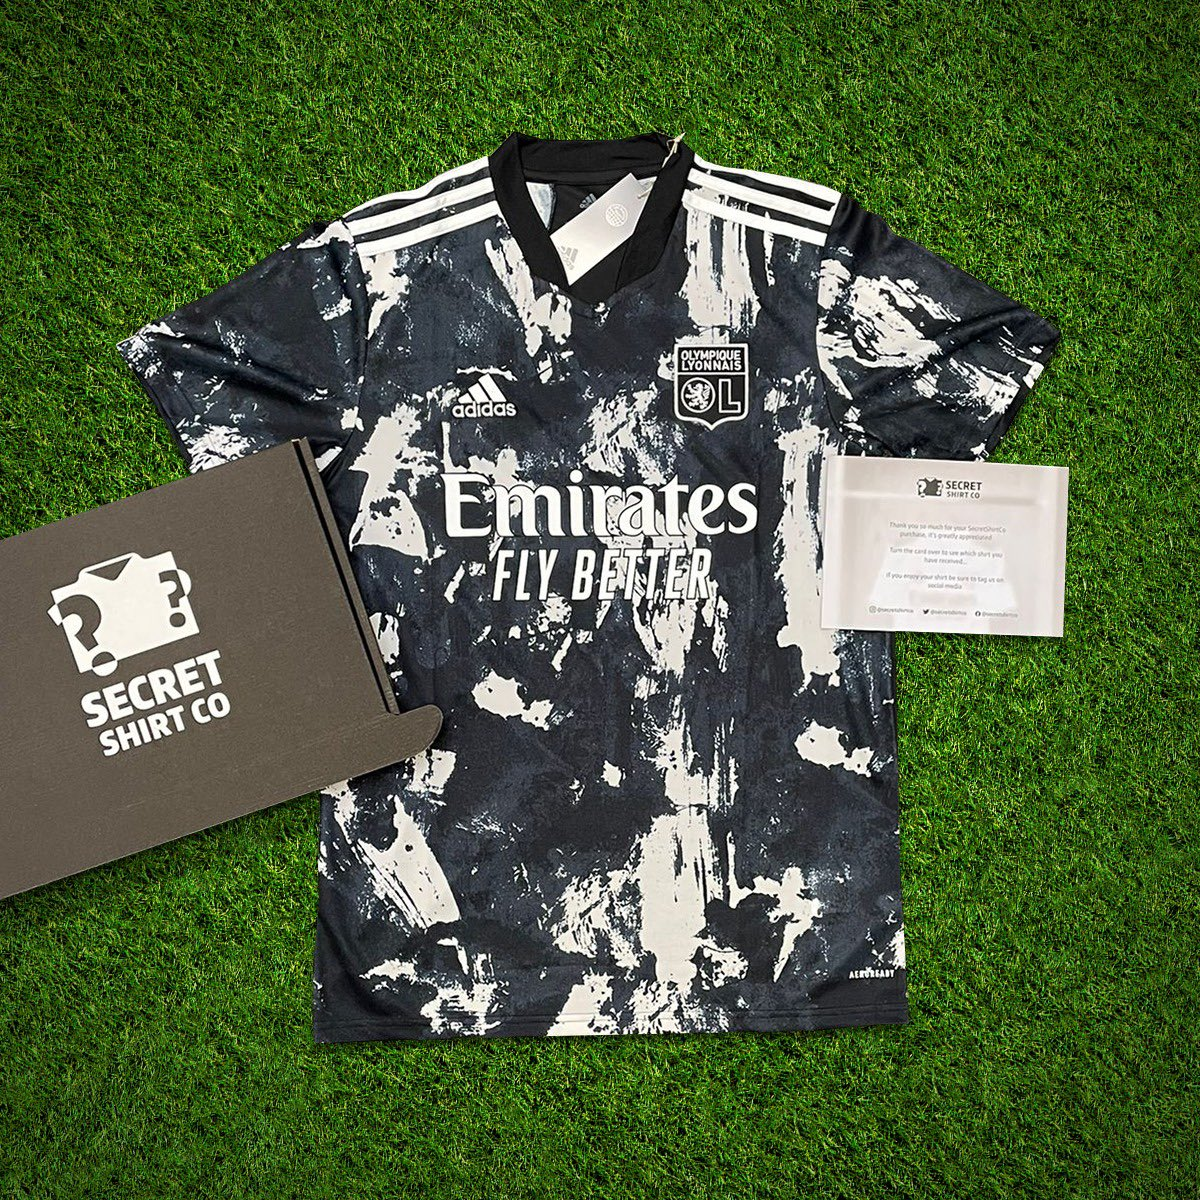 If Lionel Messi plays against Manchester City tonight we'll giveaway a SecretShirt.co box 📦 To enter 👇 🔄 Retweet this tweet 🤝 Follow us Good luck!